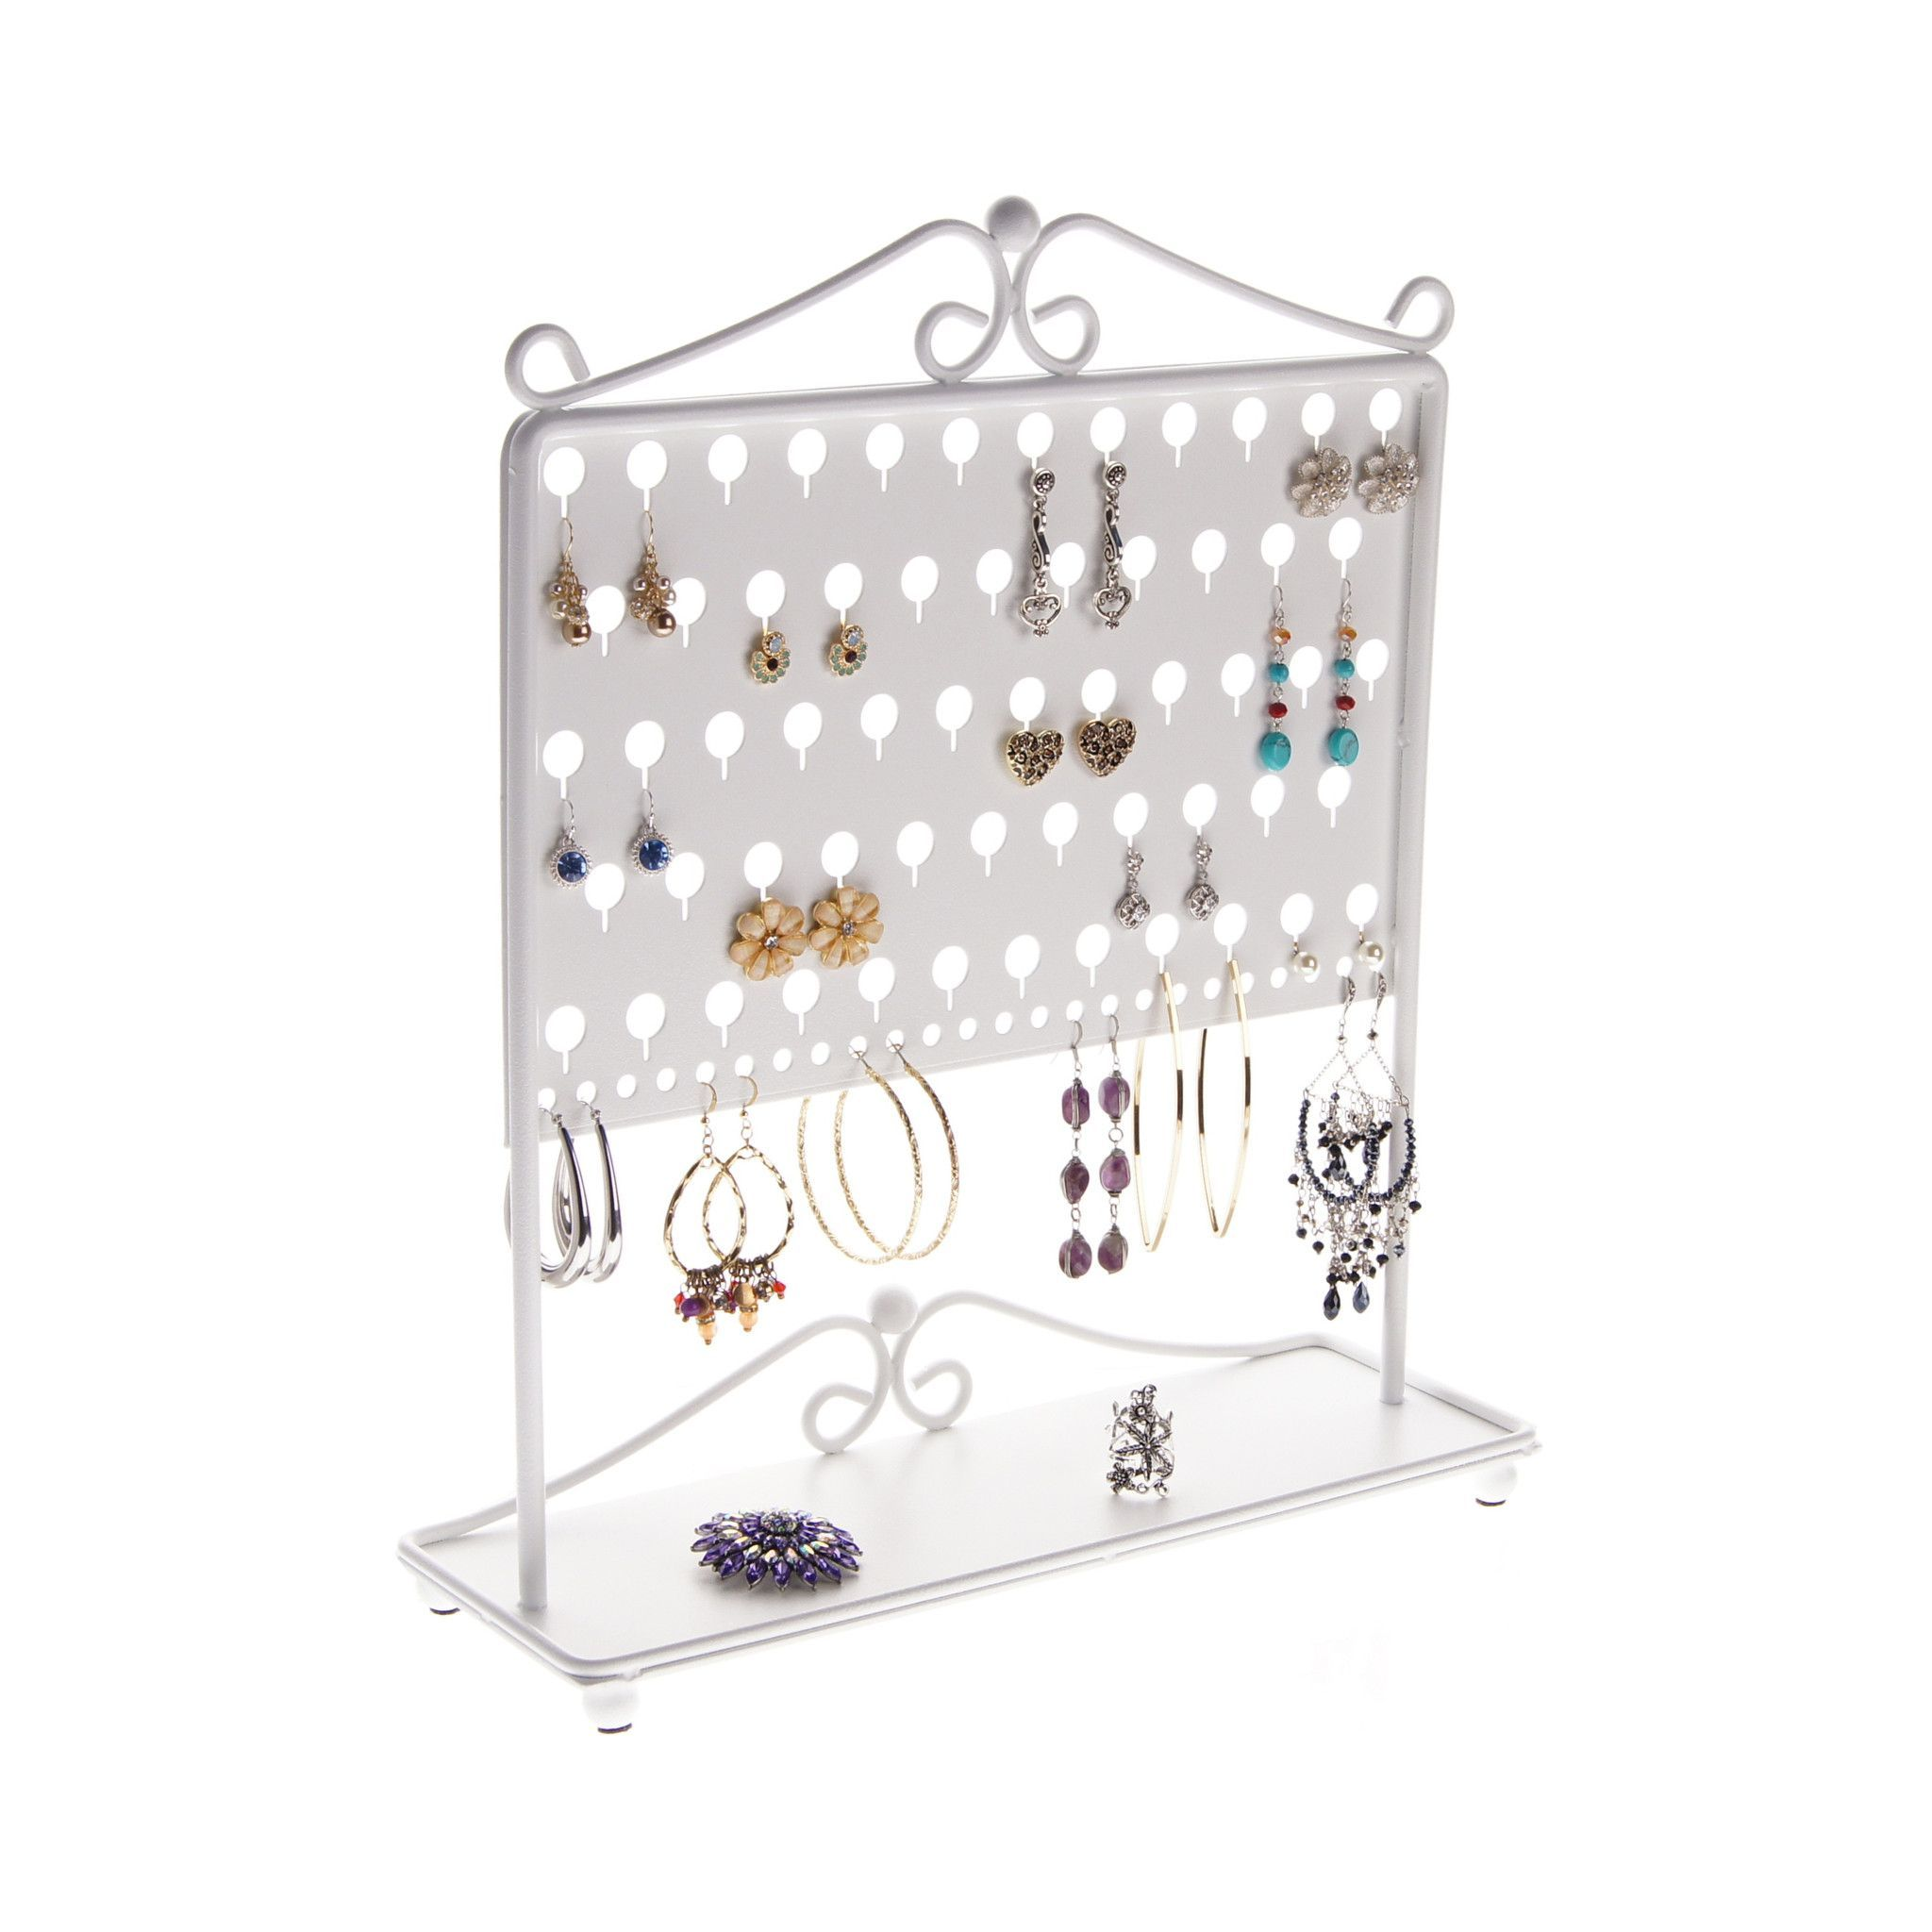 Wall Hanging Jewelry Rack Earrings Ear Studs Jewelry Display Metal Stand Wall Type Necklace Bracelets Organizer Holder Bronze Hanger Furniture Life